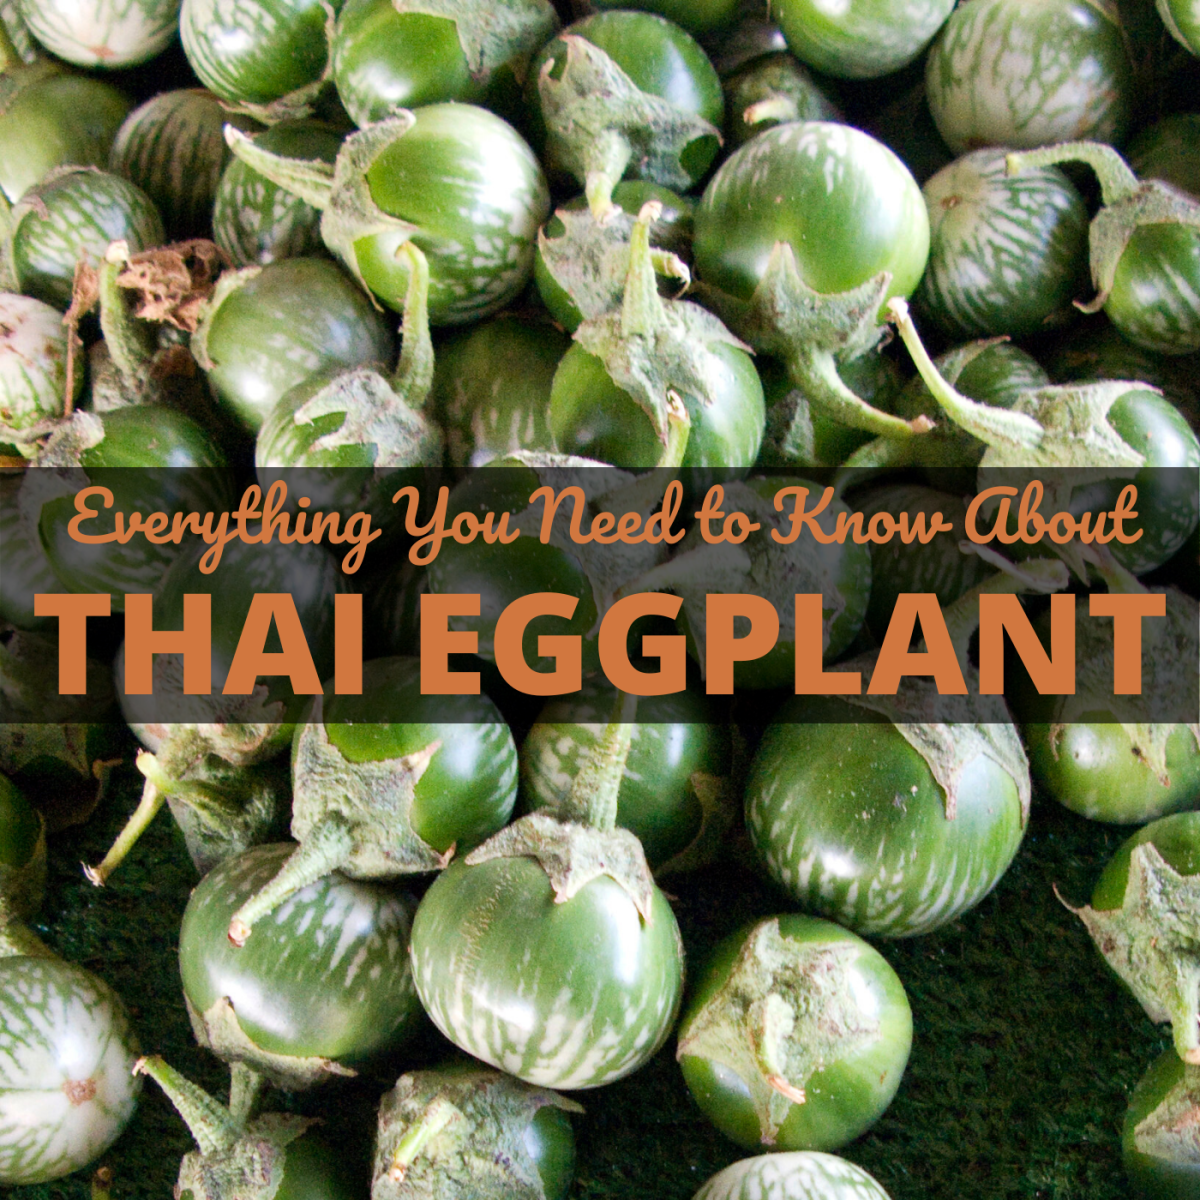 How much do you know about Thai eggplant?